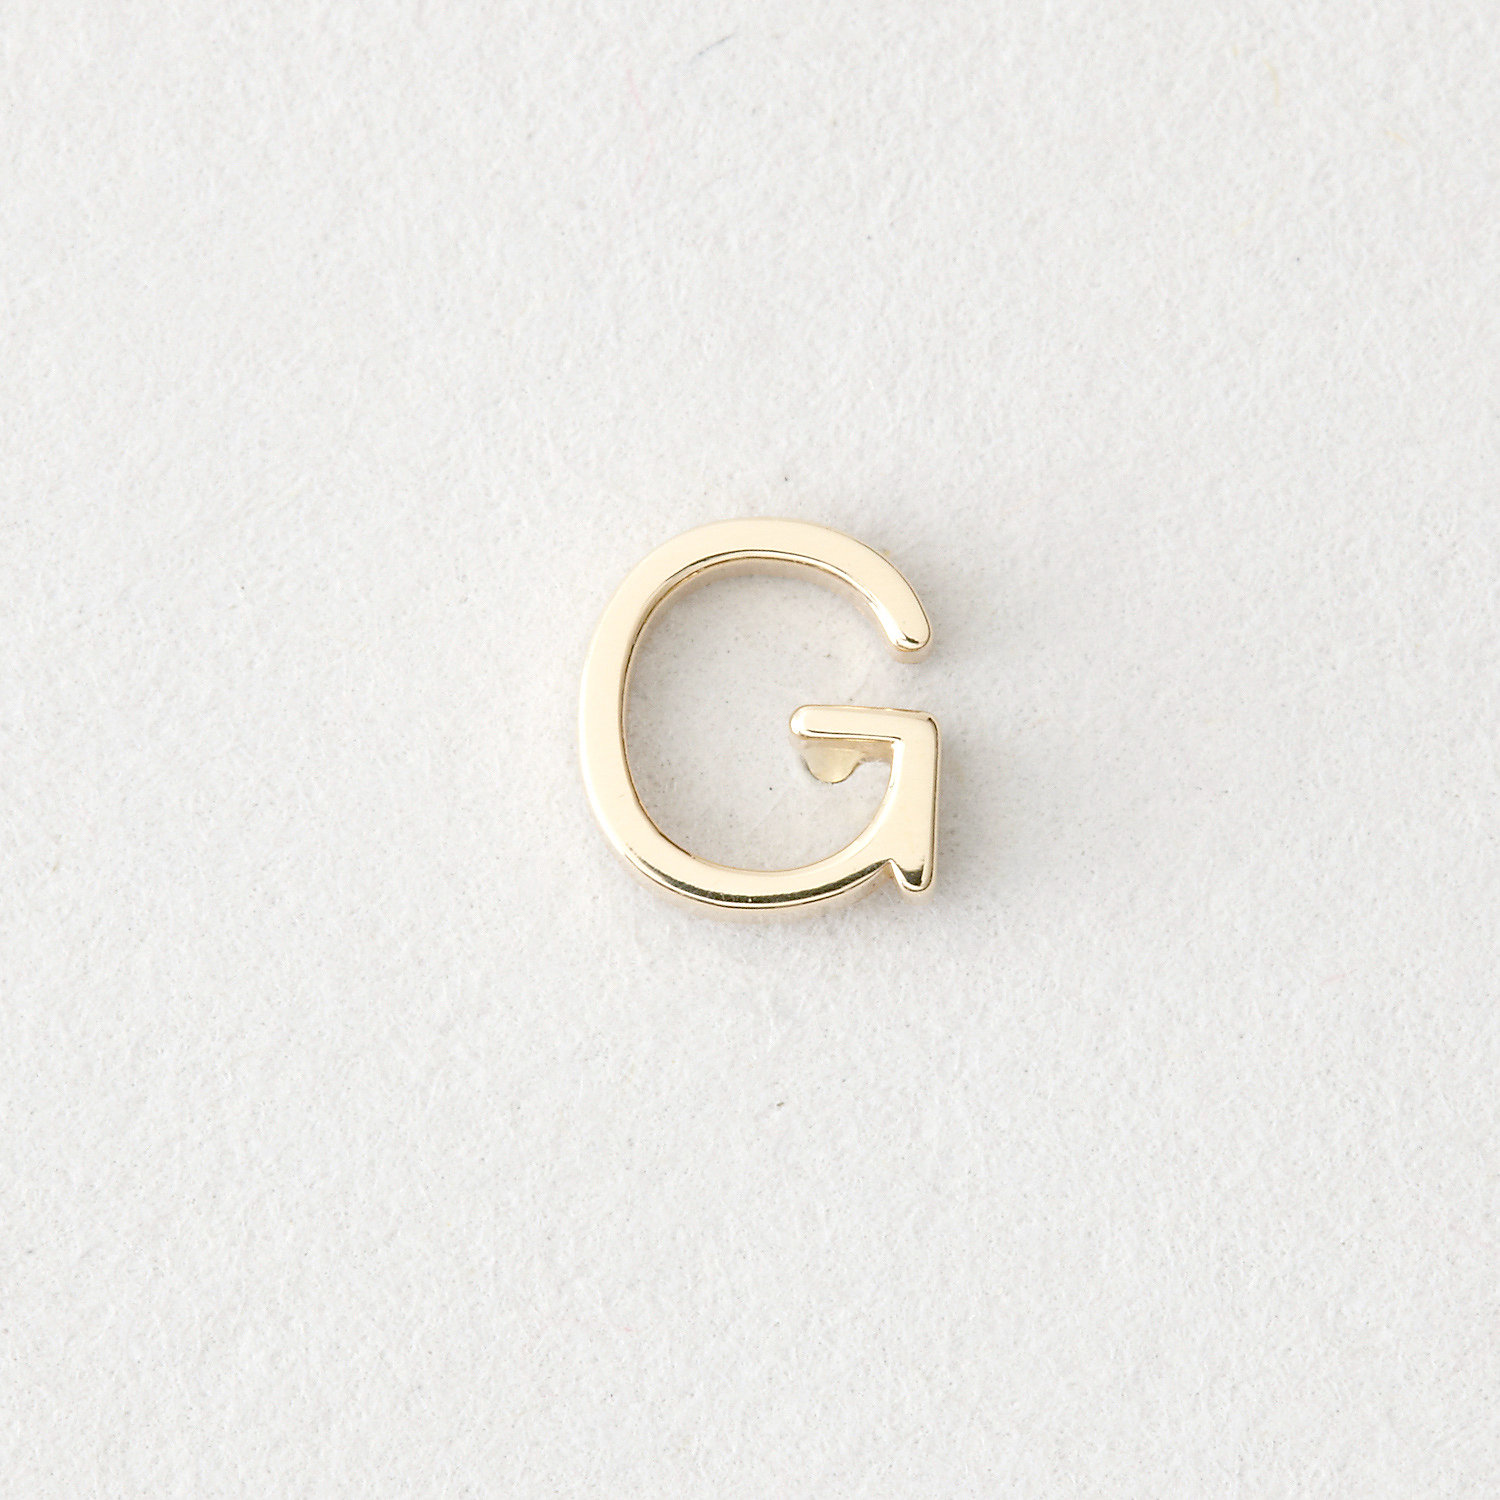 MINI LETTER STUD EARRING - G